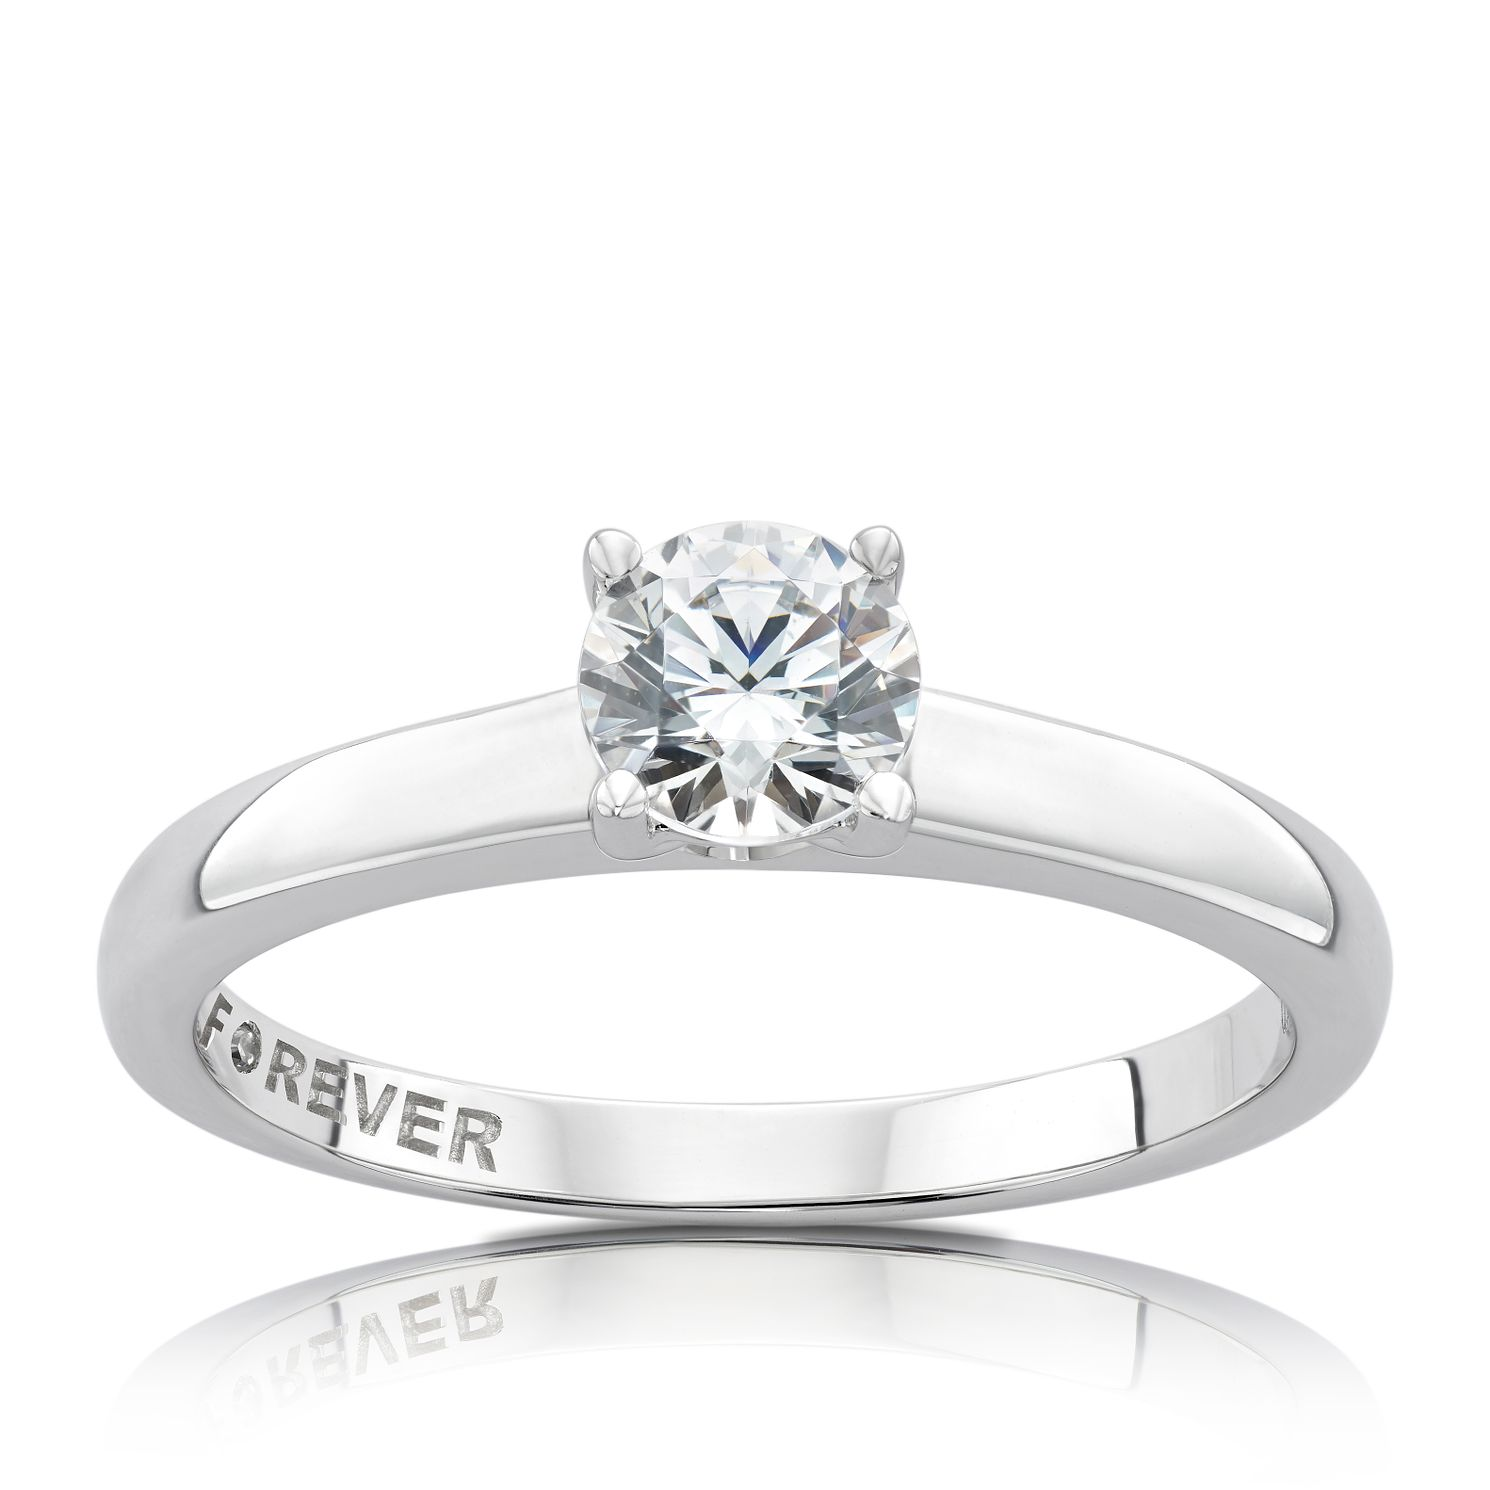 The Forever Diamond White Gold 1/2ct Round Diamond Ring - Product number 5072468